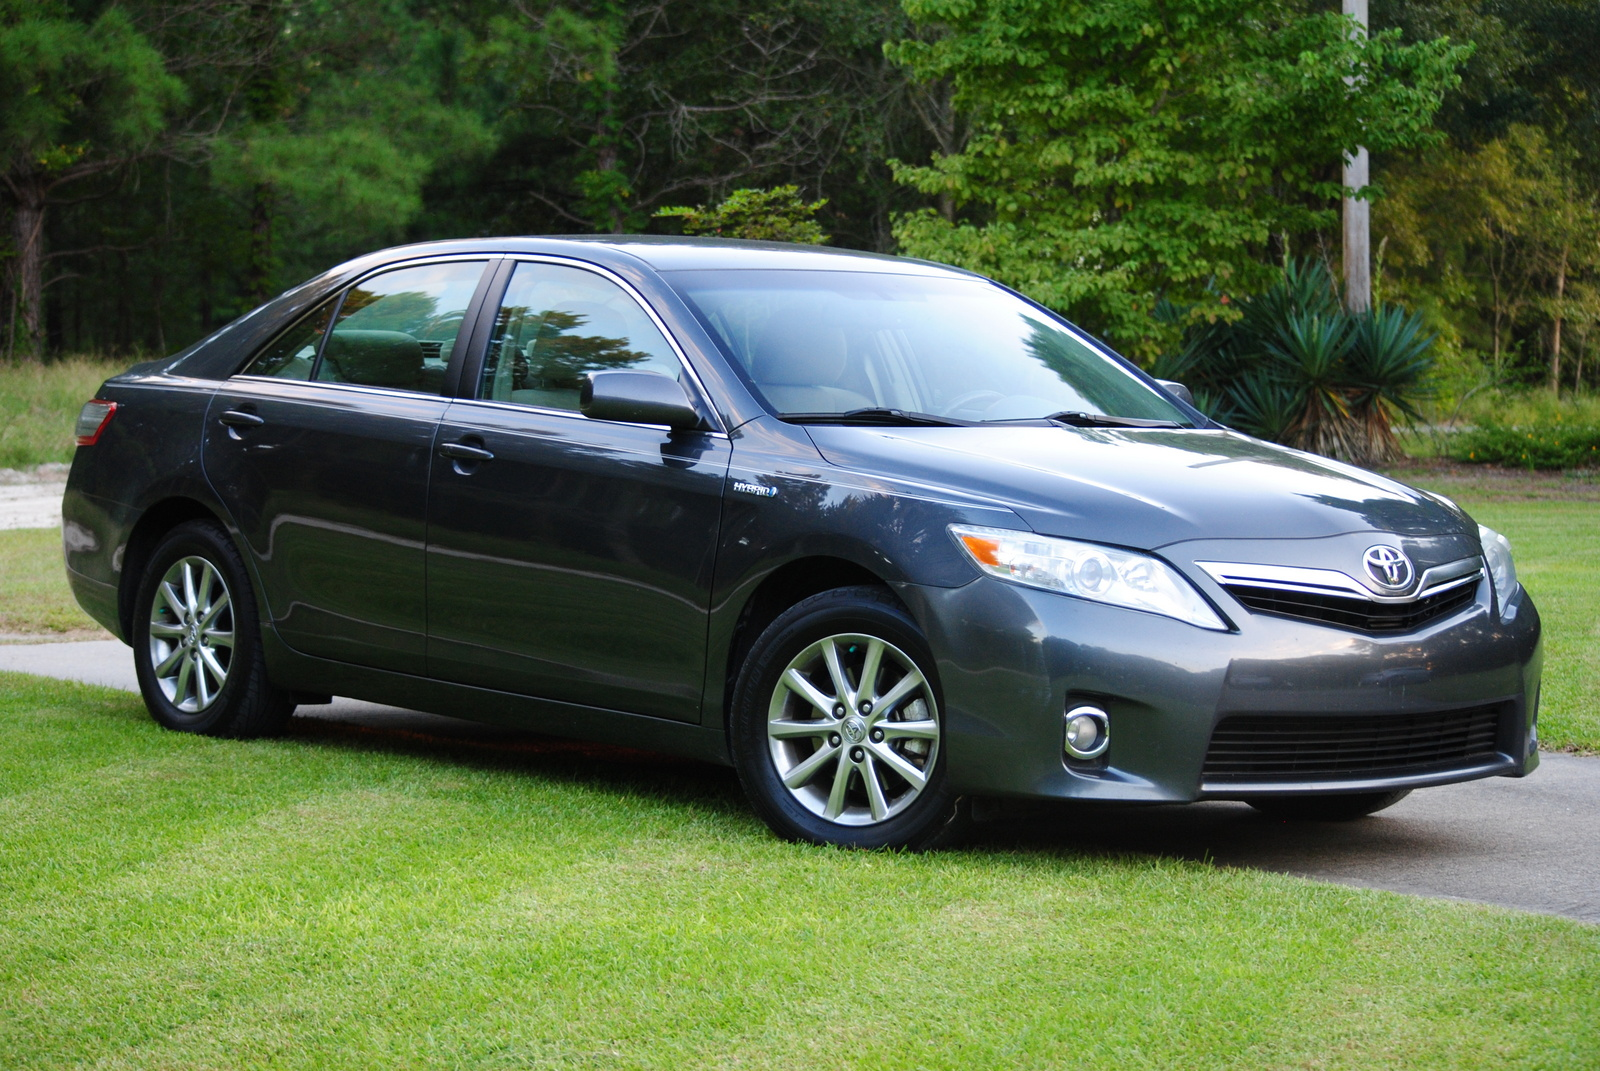 2010 toyota camry hybrid review ratings specs prices html. Black Bedroom Furniture Sets. Home Design Ideas